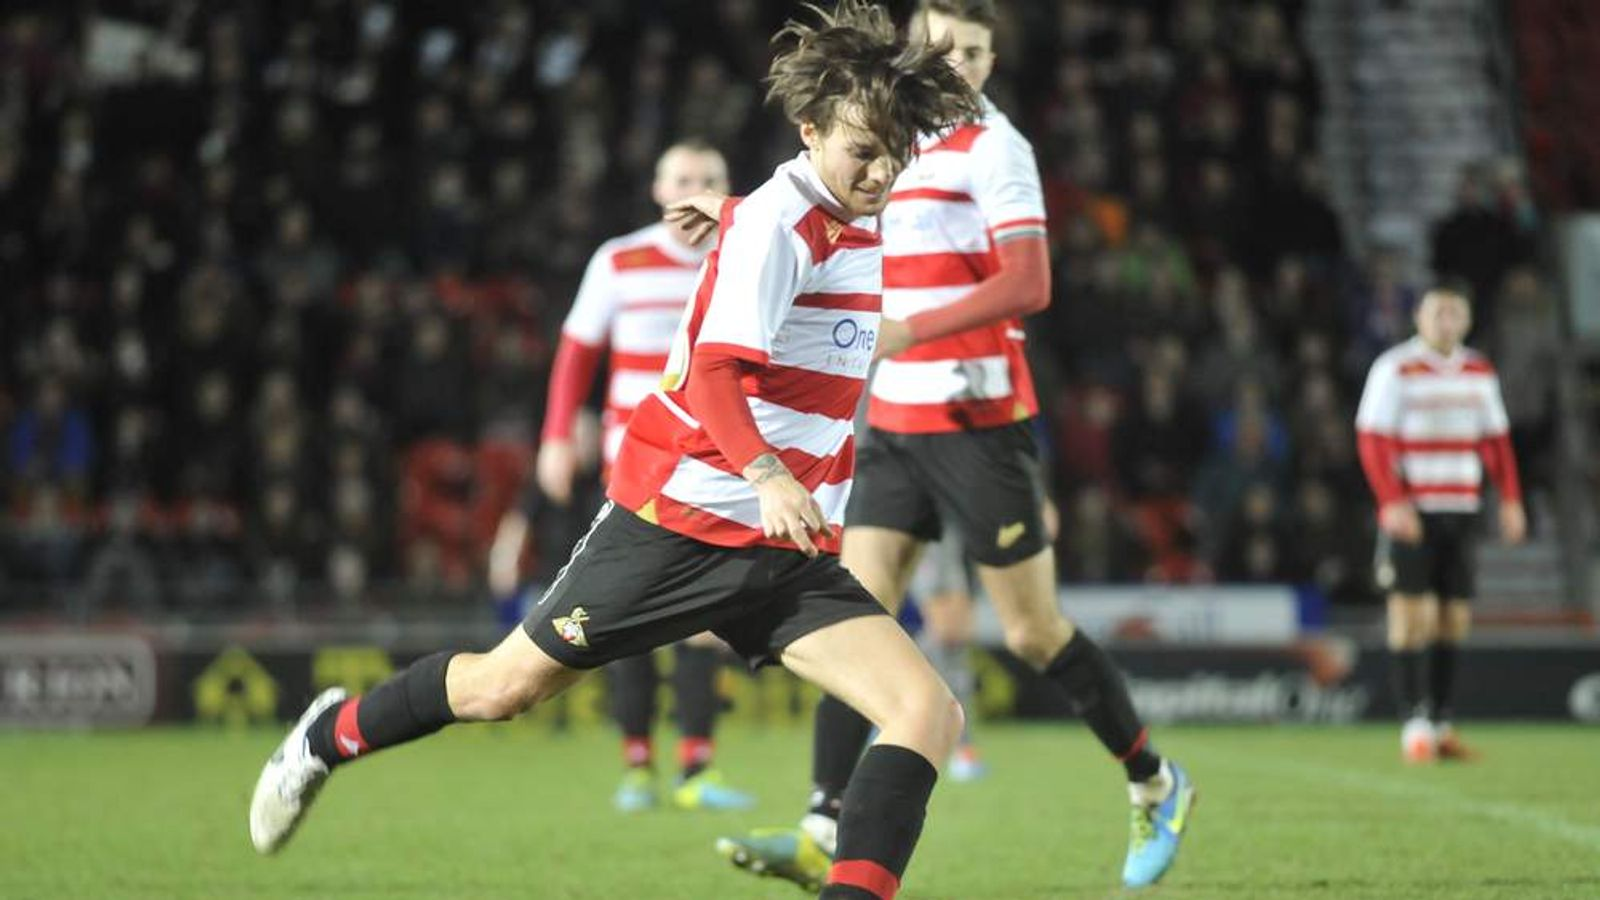 Louis Tomlinson in action for Doncaster Rovers reserves.